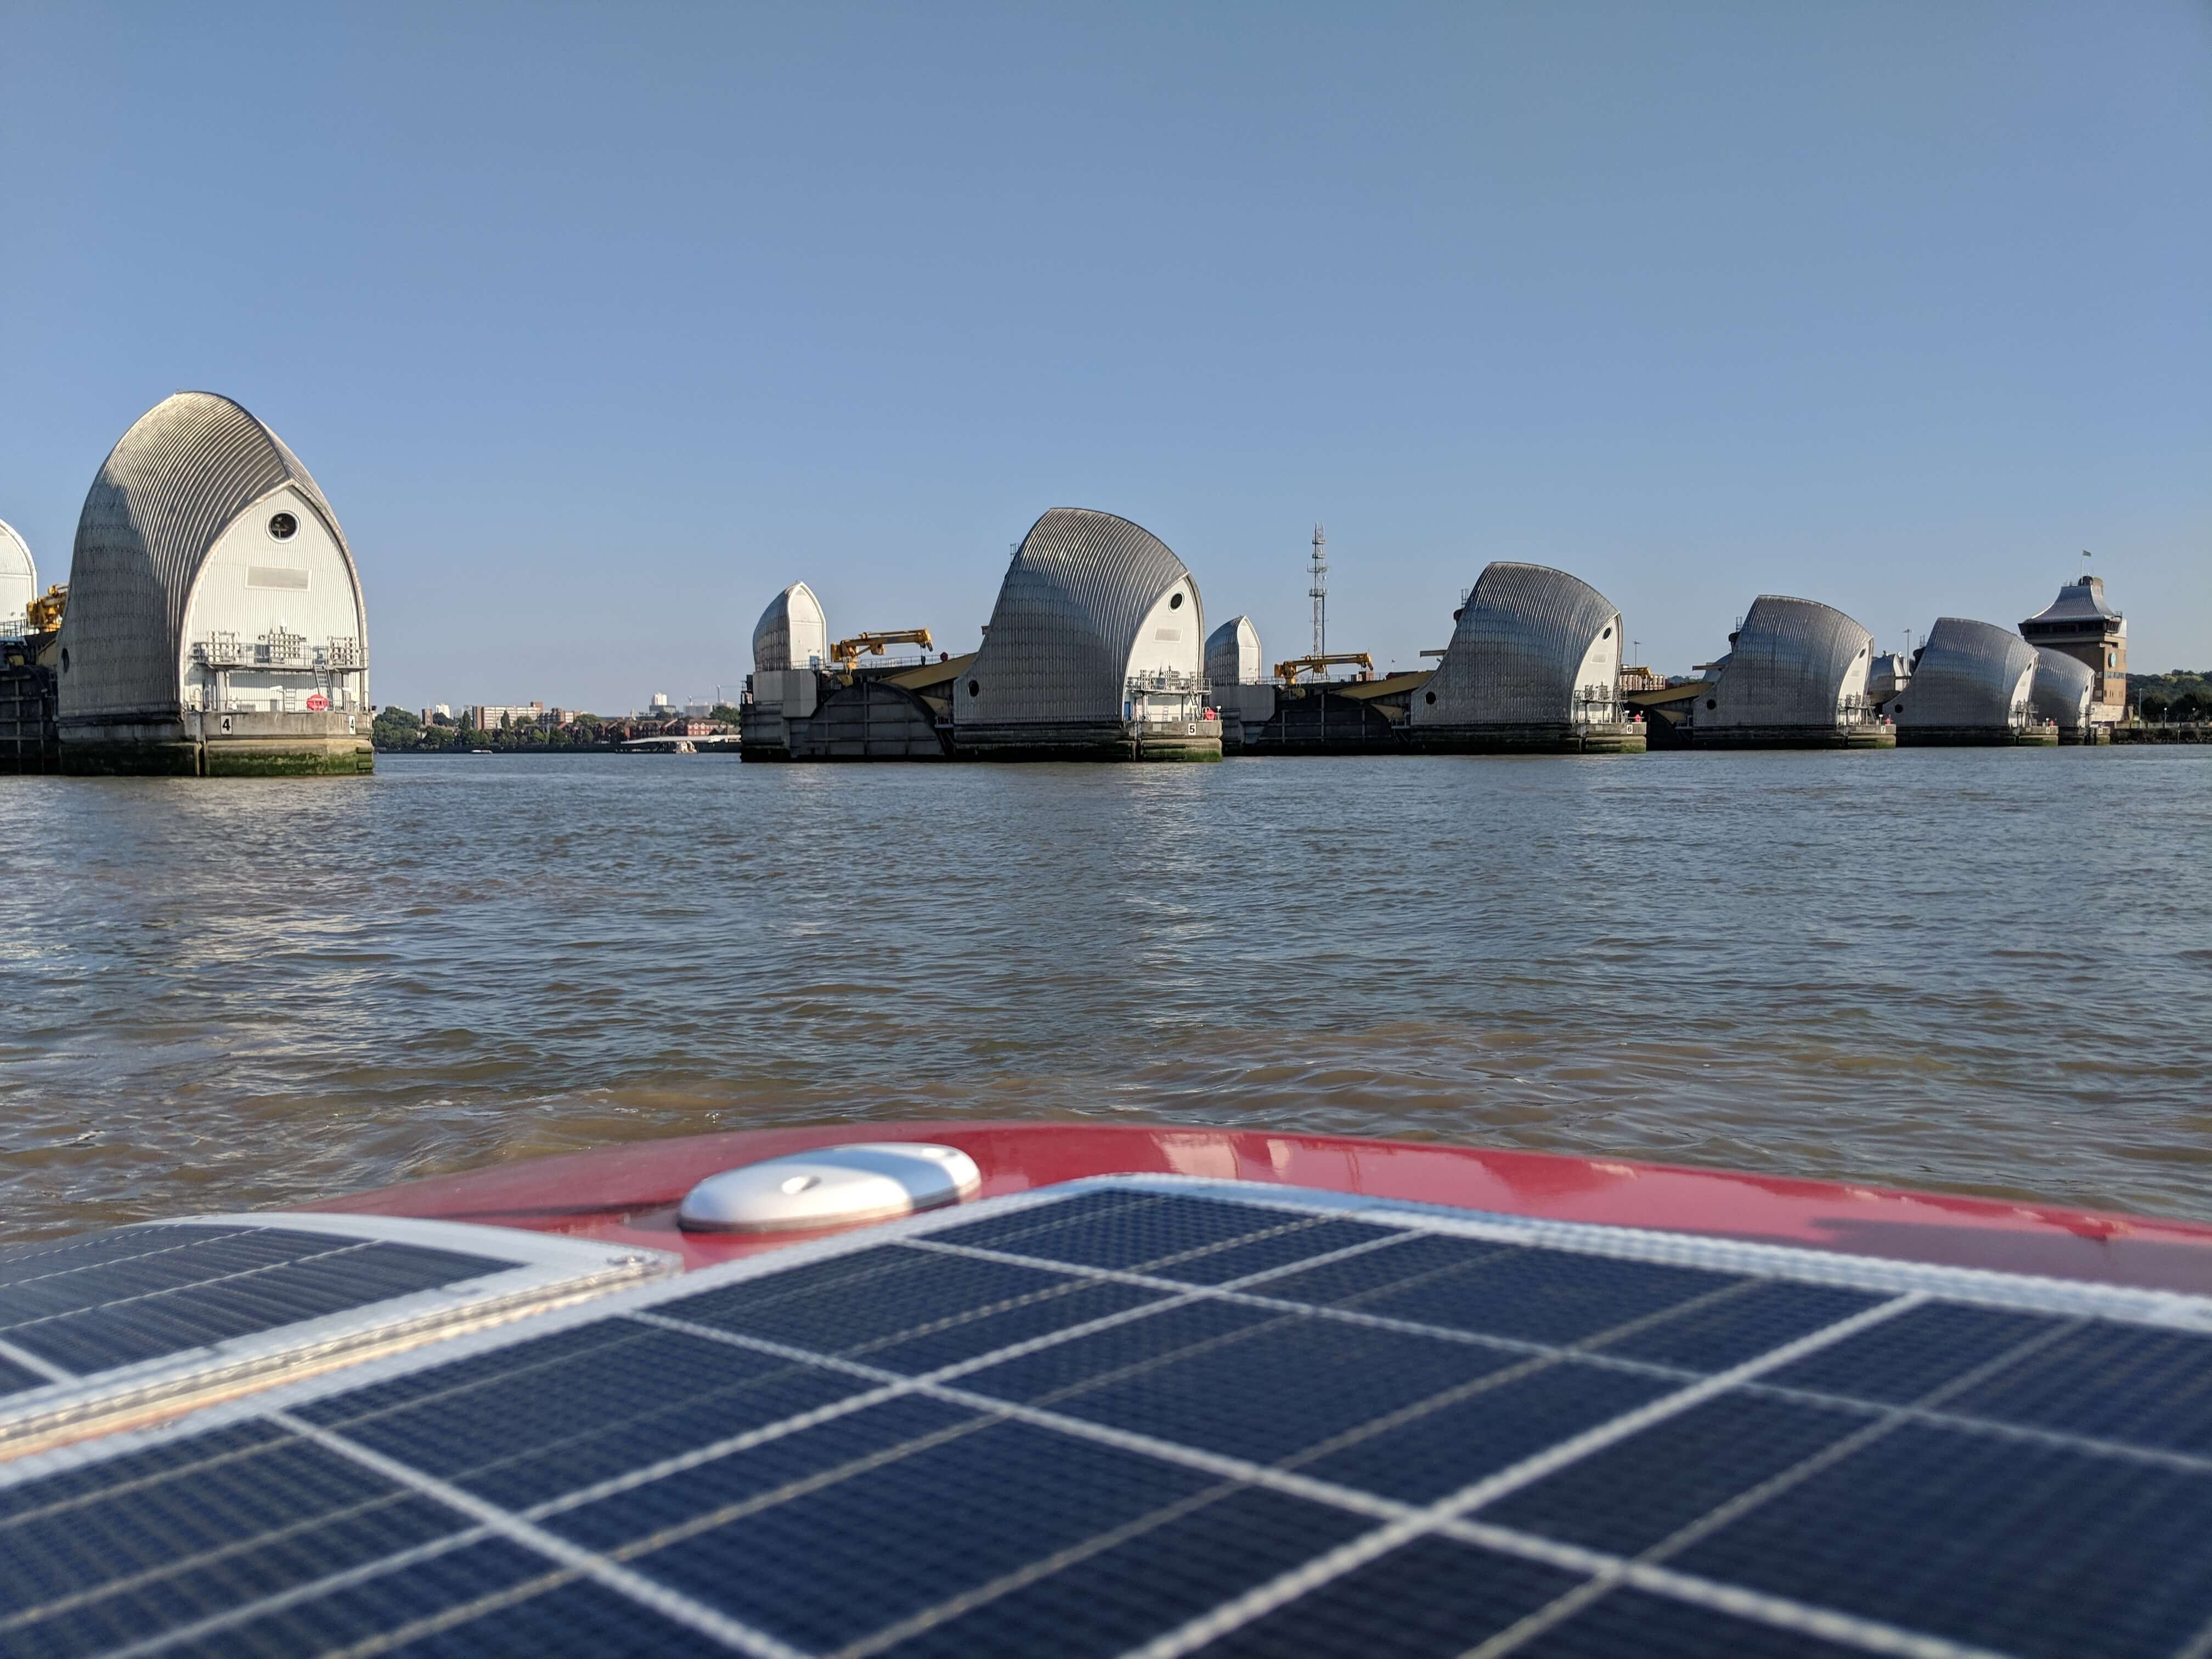 Rowing past the Thames Barrier